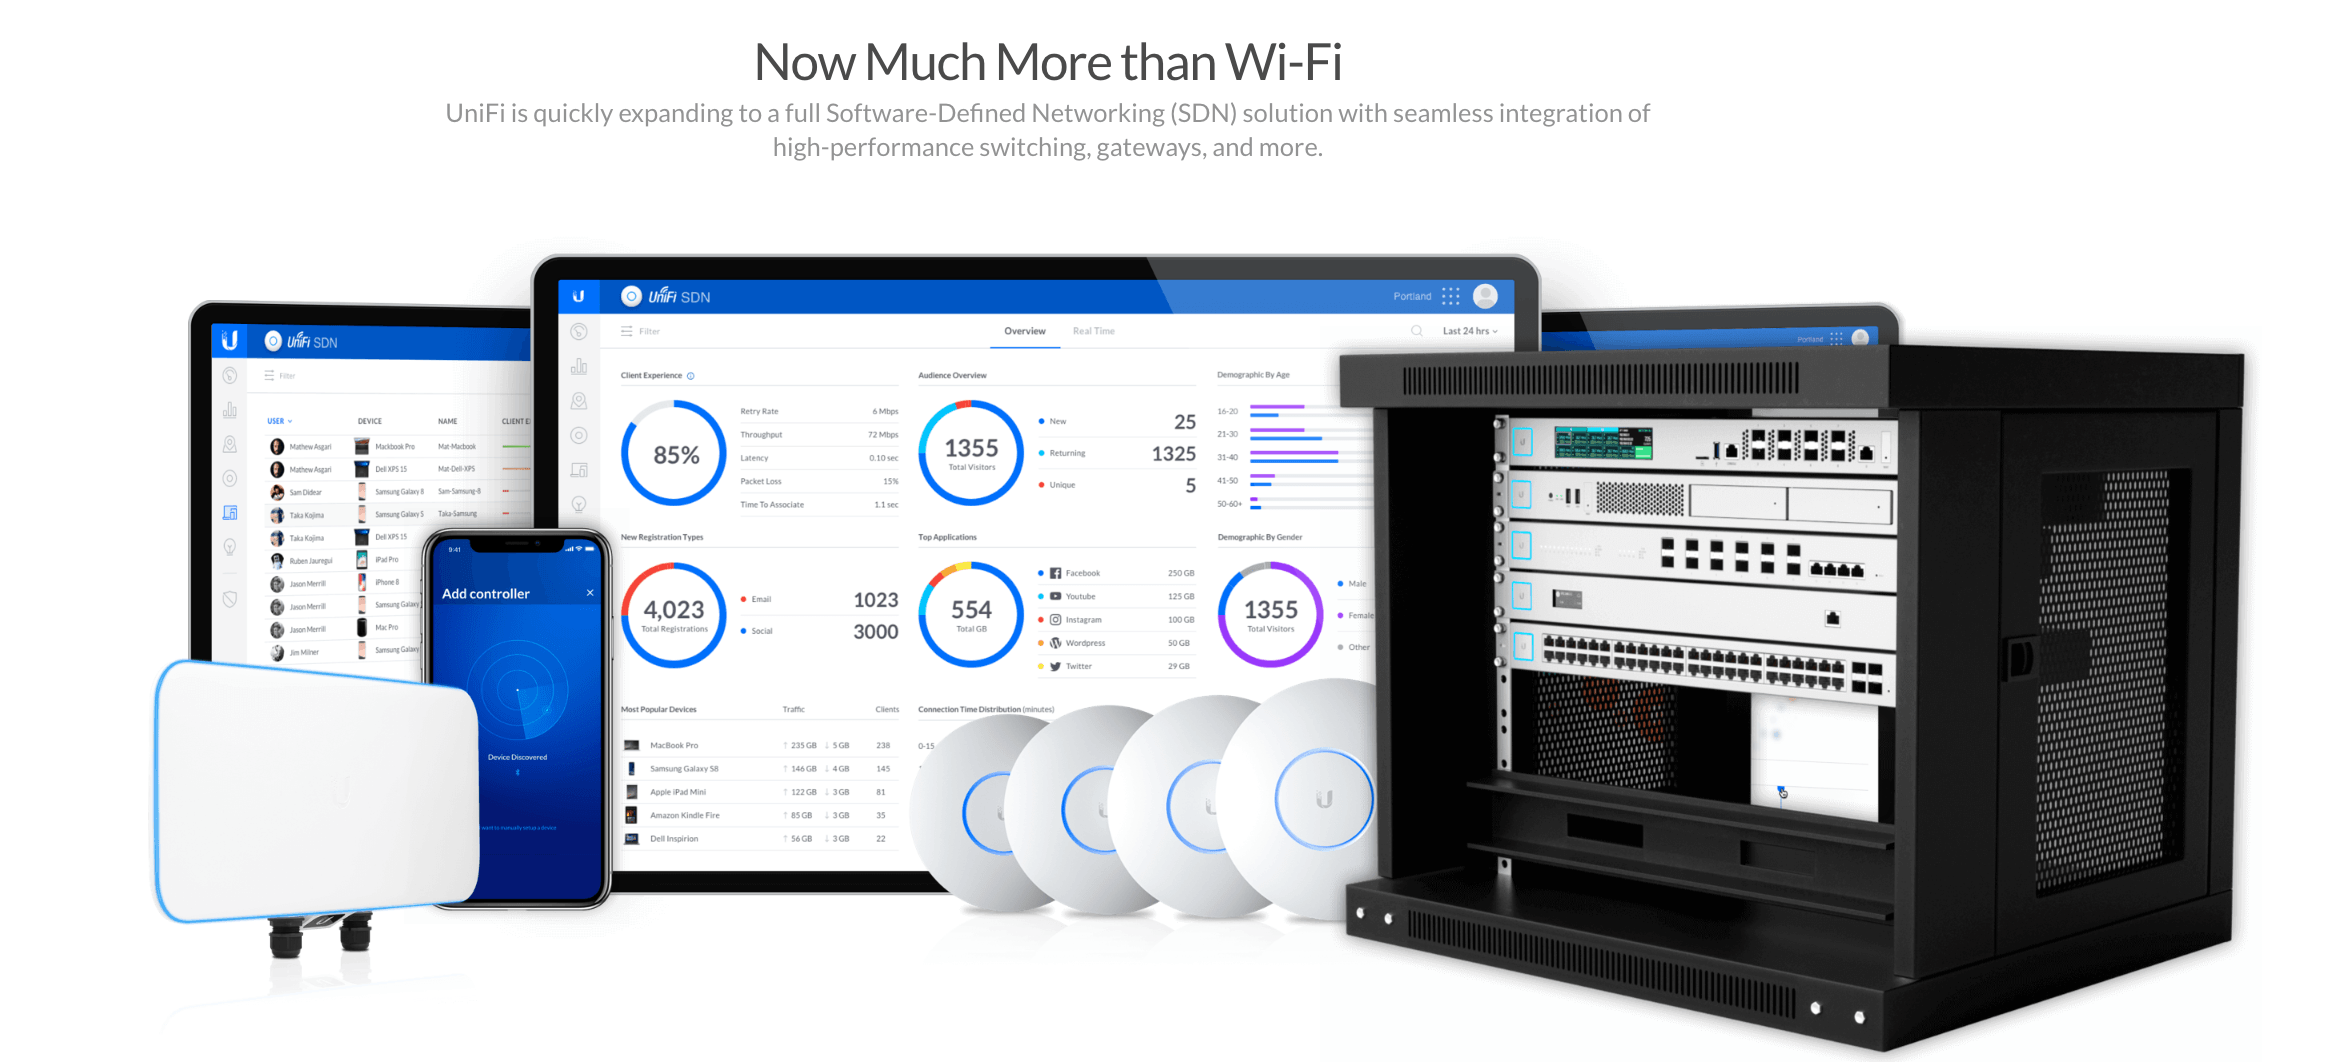 It's Another Exciting Time For Ubiquiti